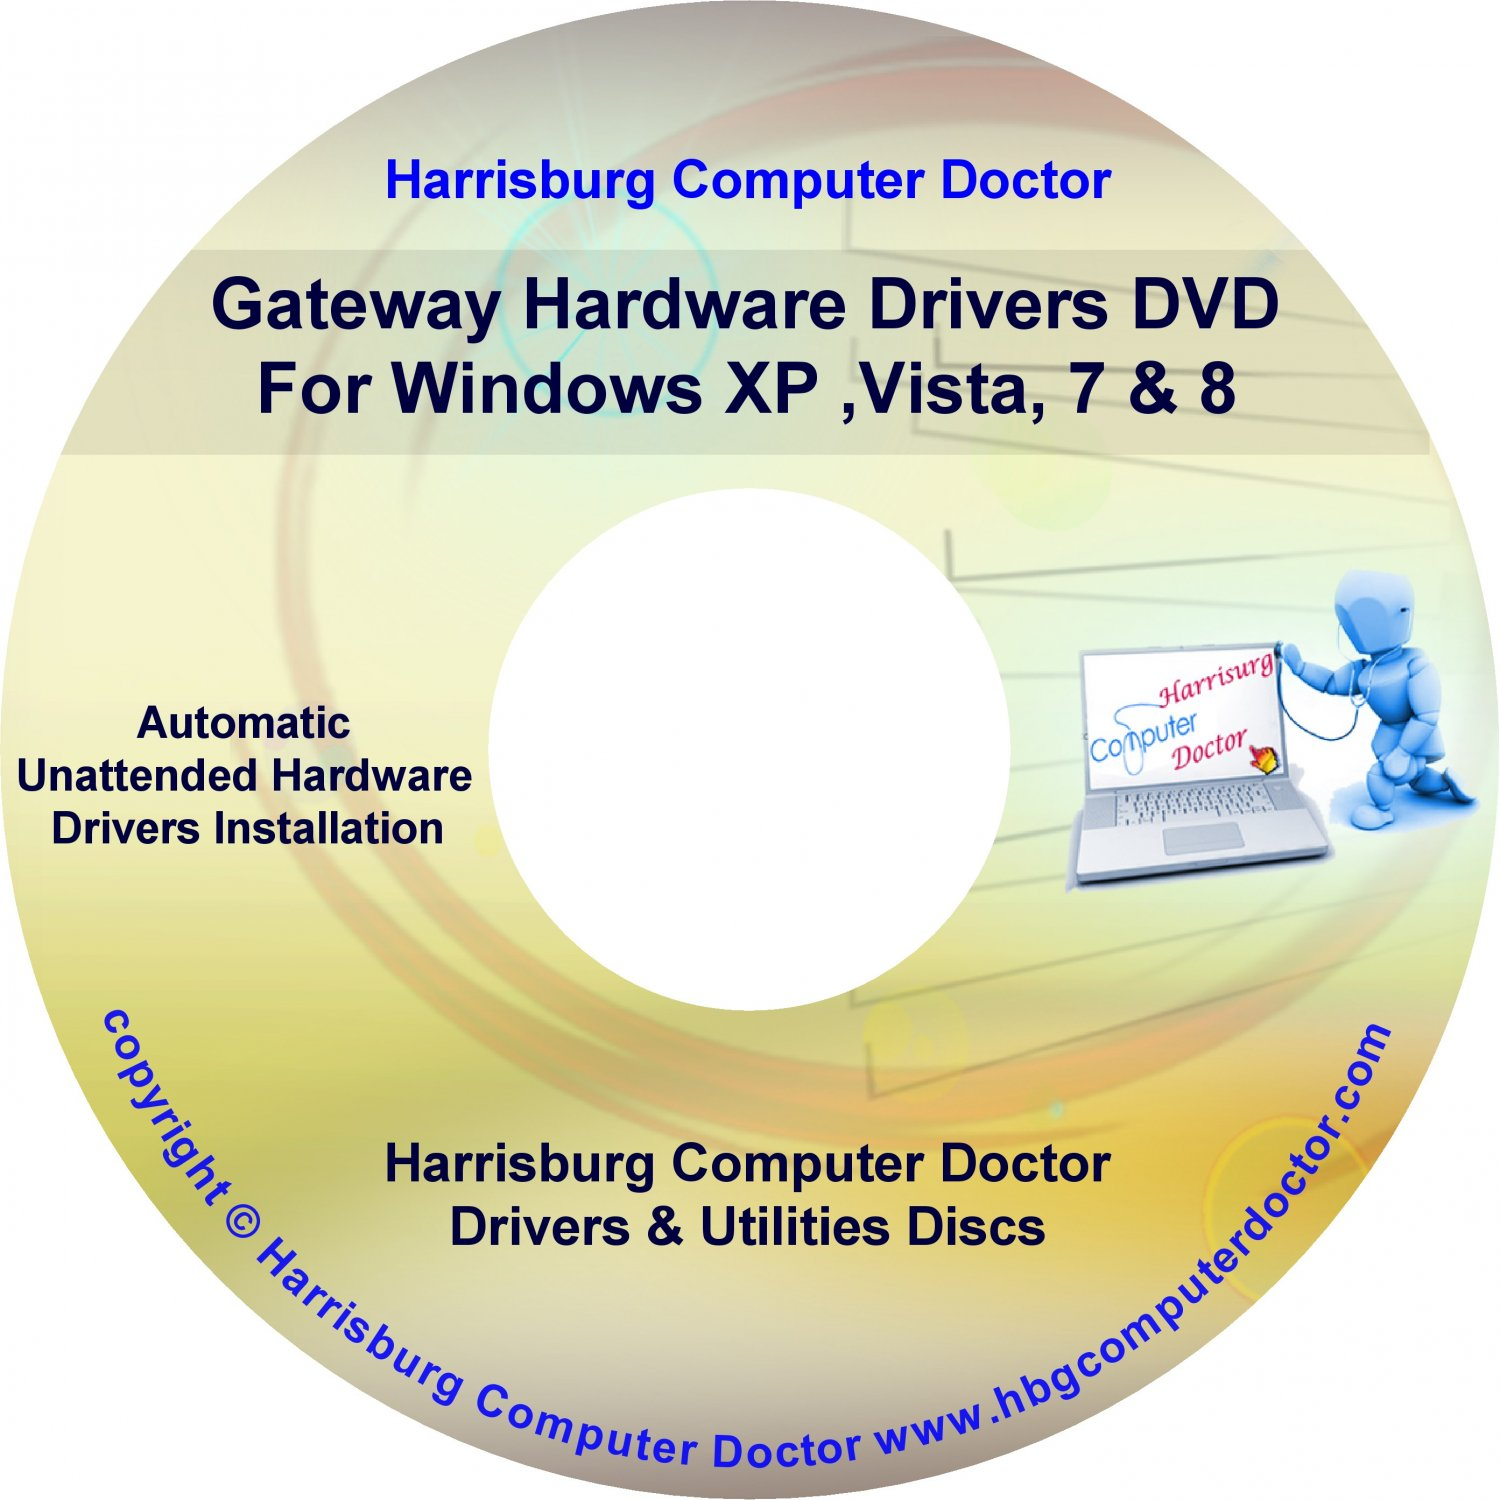 Gateway 6021GH Drivers DVD For Windows, XP, Vista, 7 & 8